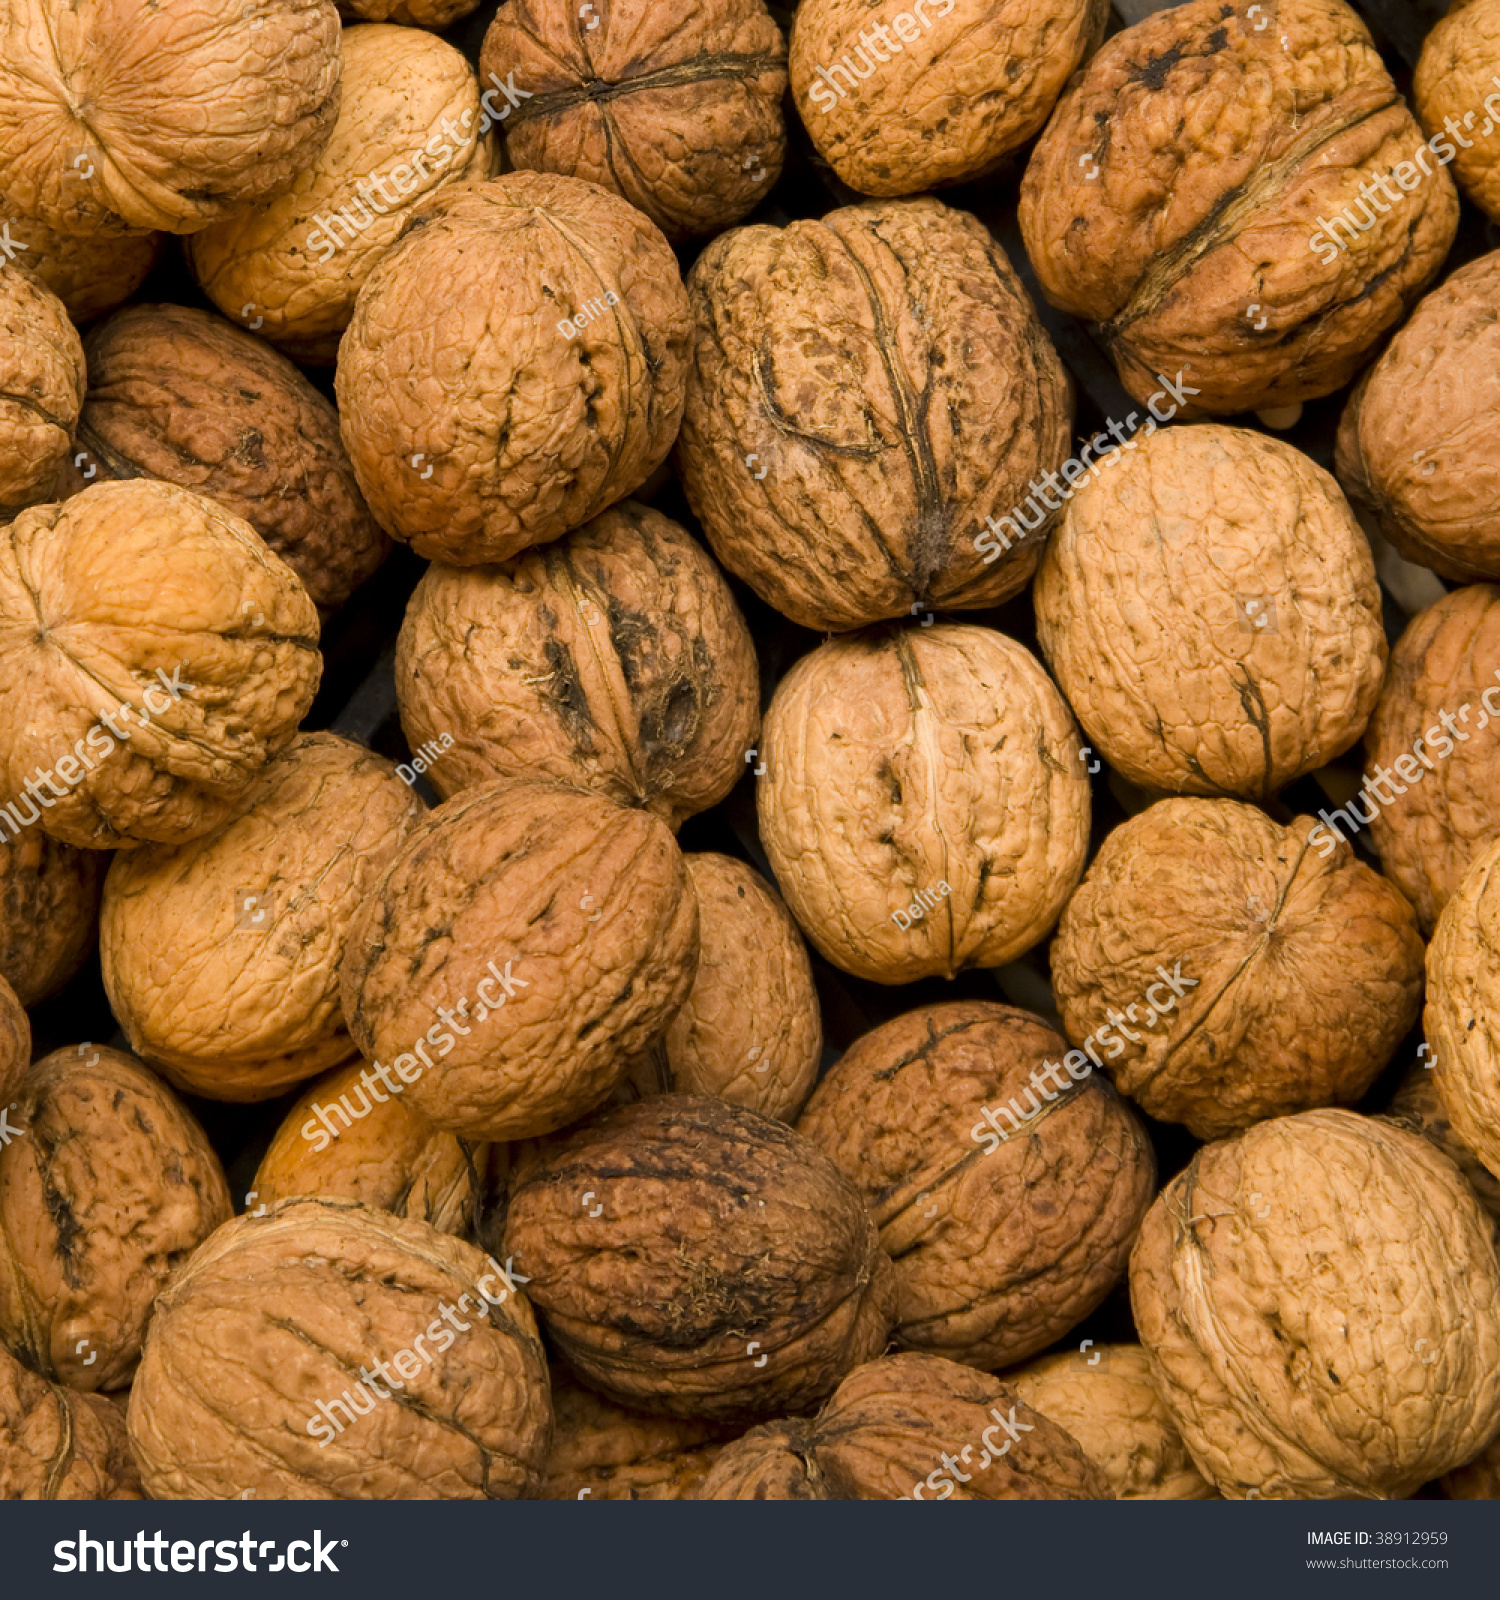 Wallnuts Background These Nuts Known Common Stock Photo 38912959 ...